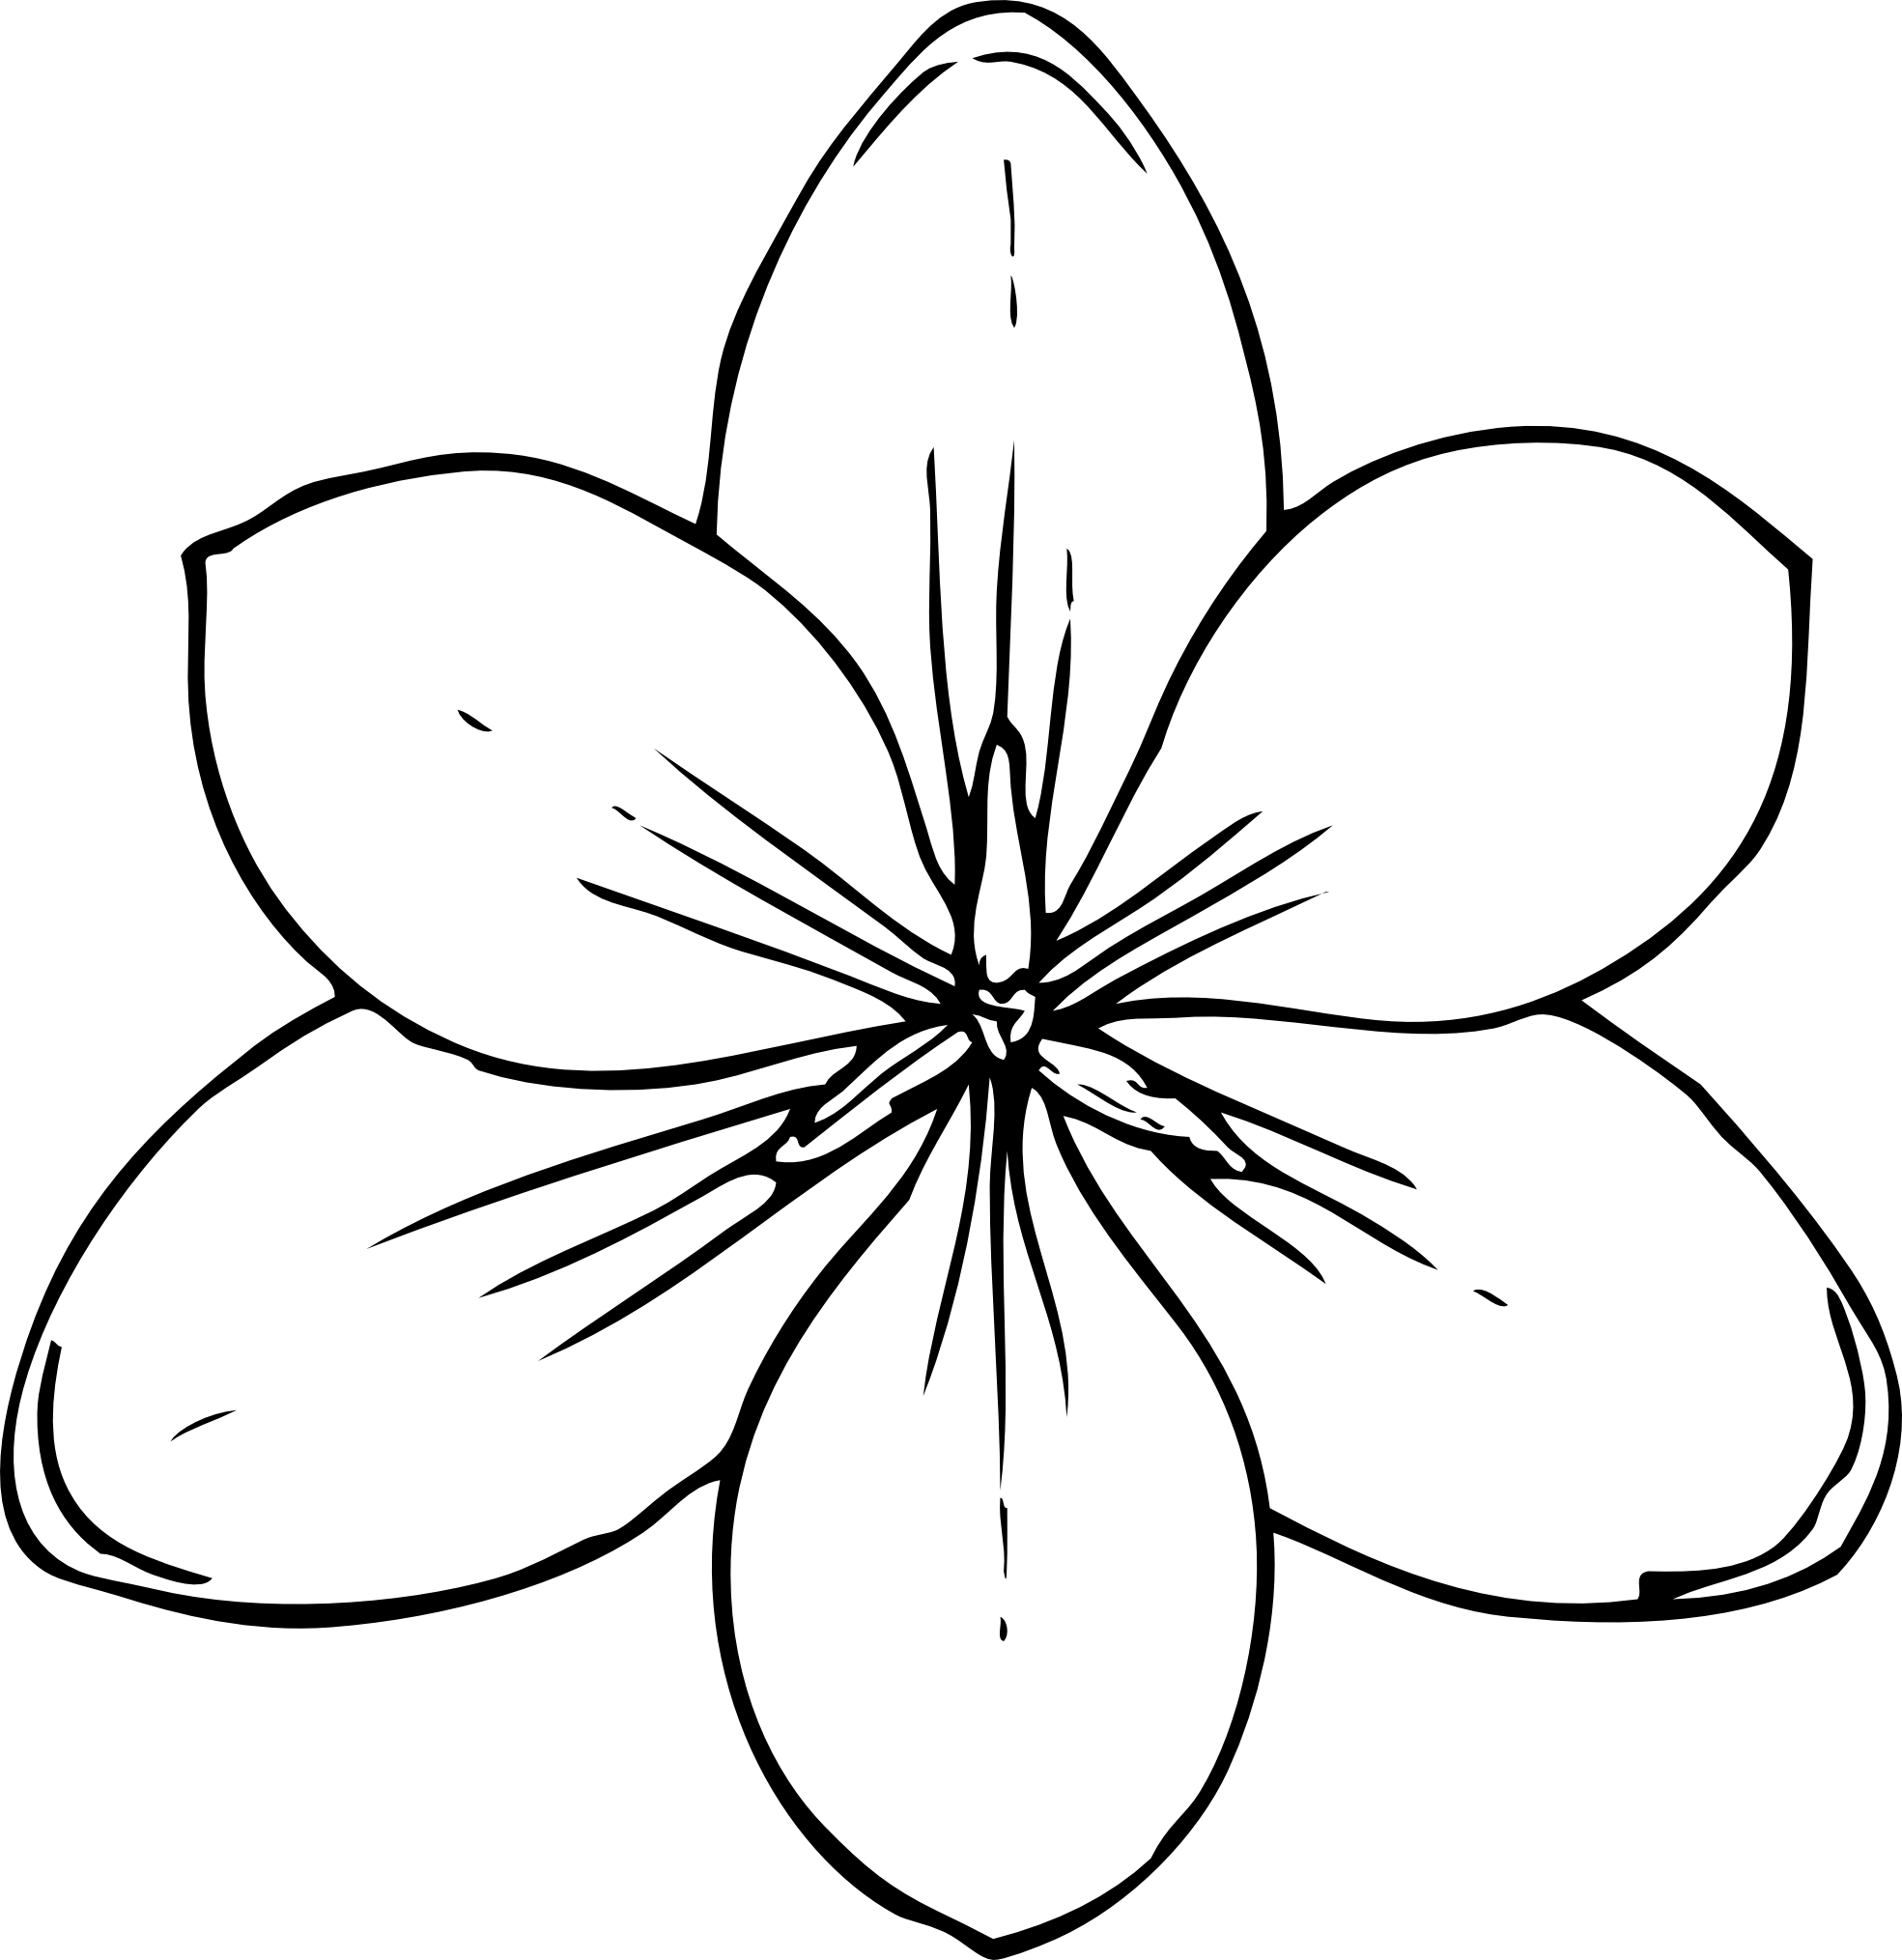 Line Drawing Of Flowers : Lotus flower line drawing cliparts